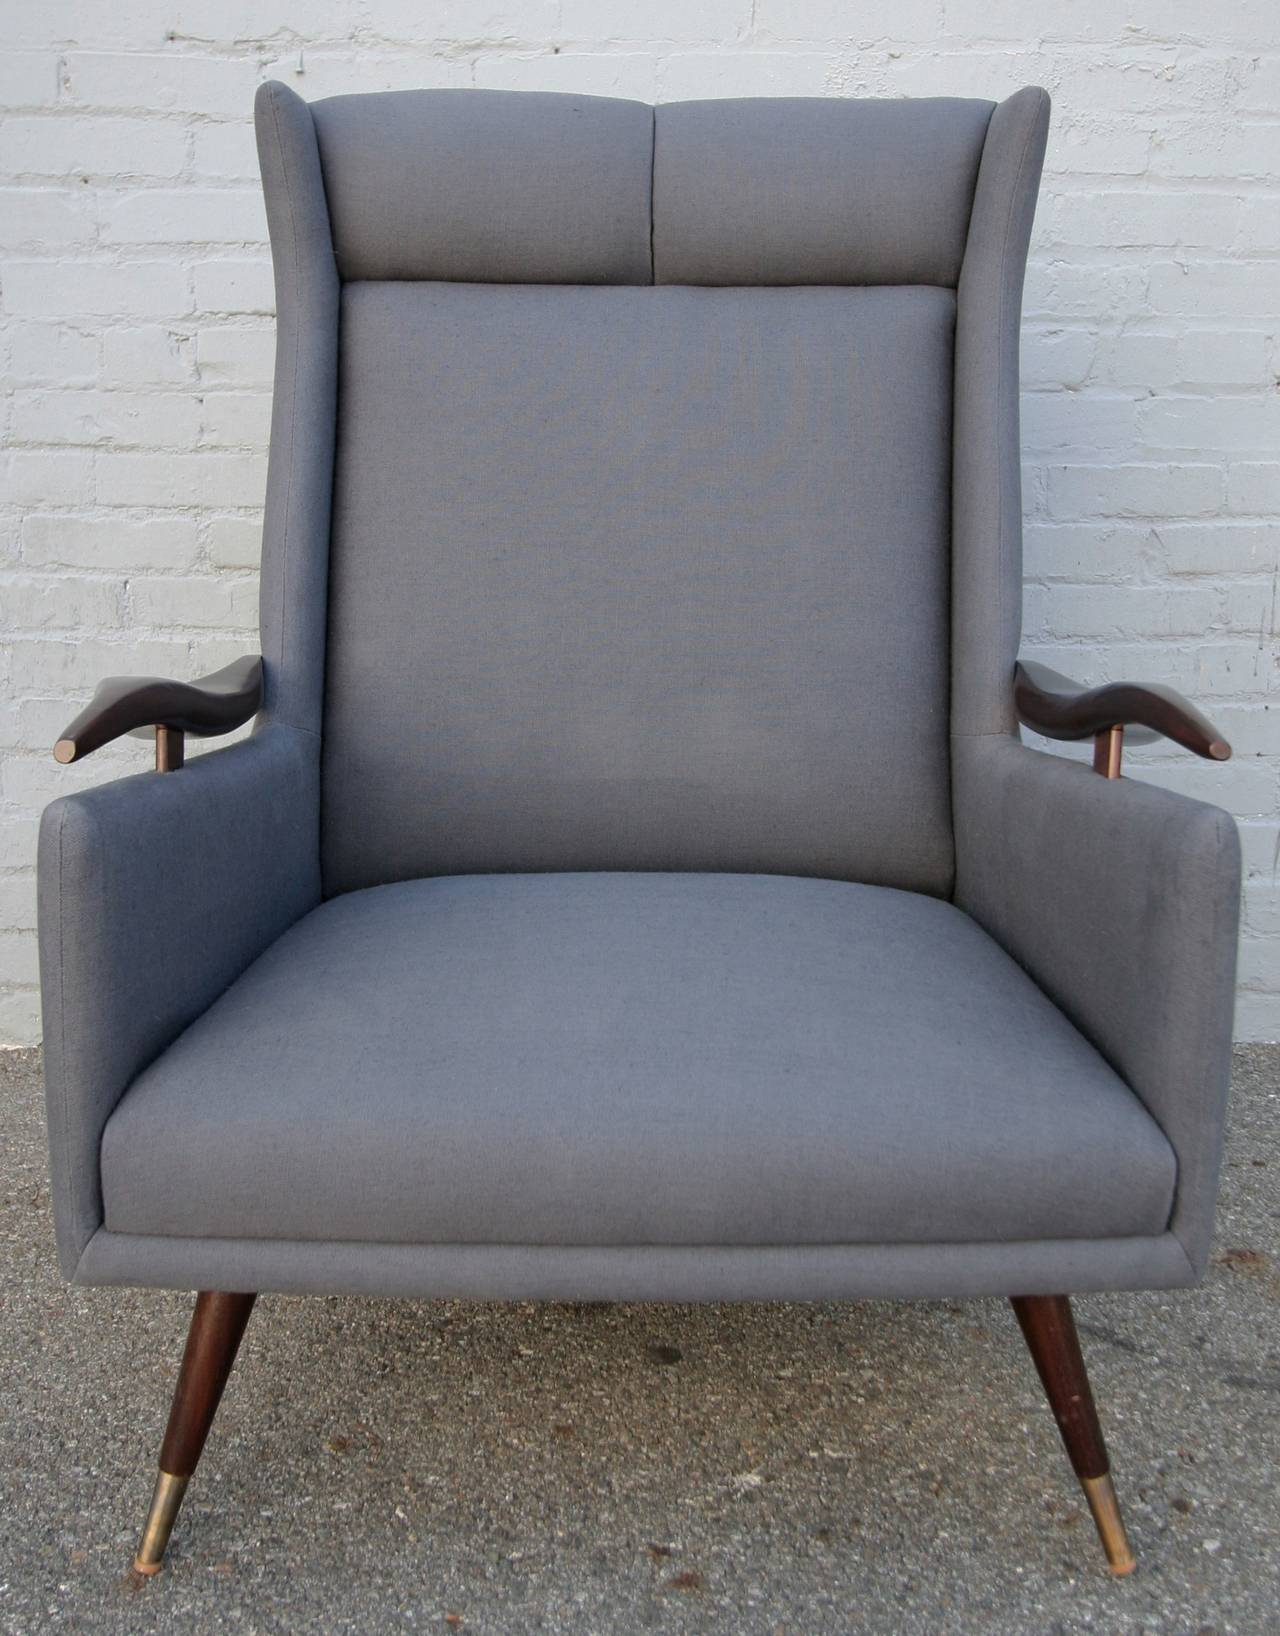 Brass Pair of 1950s Brazilian Lounge / Armchairs Chairs For Sale